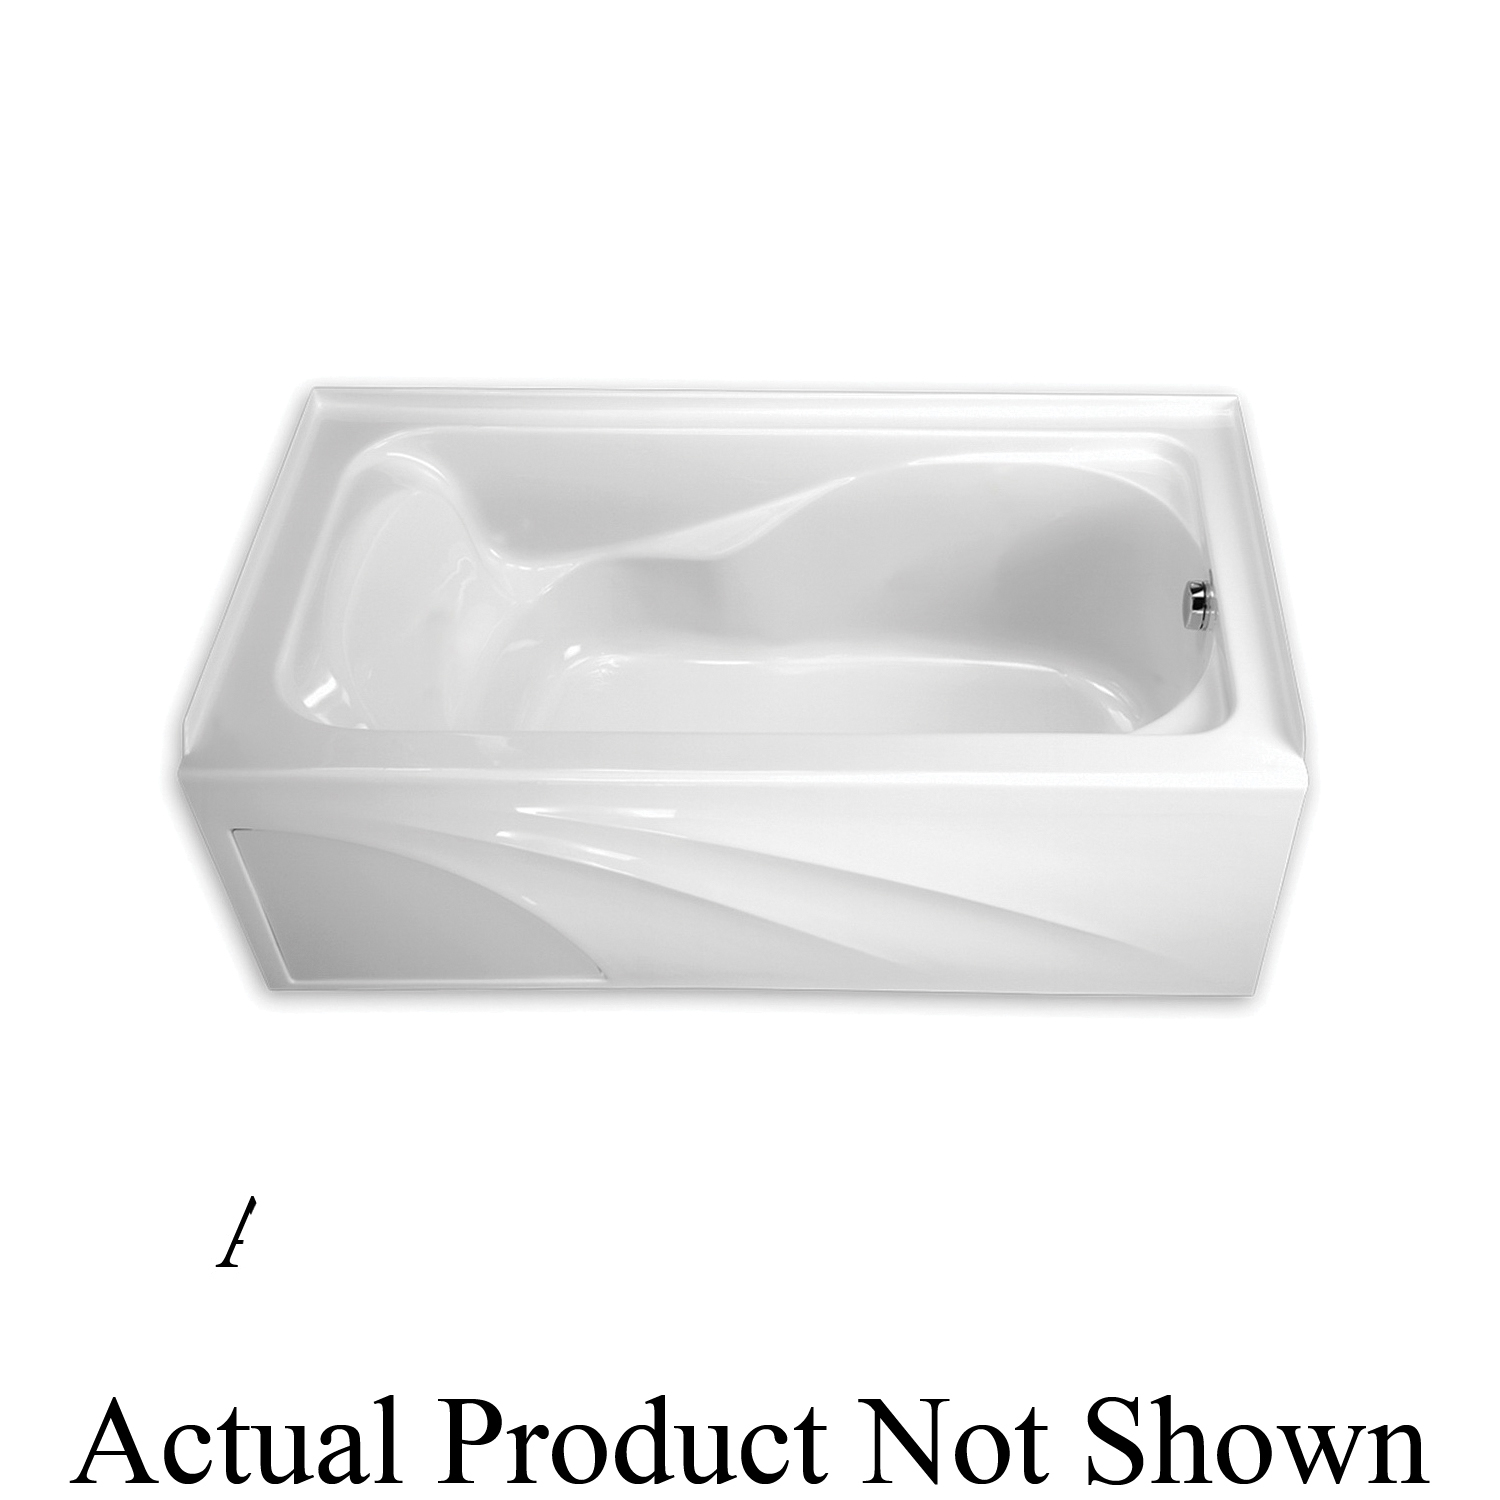 American Standard 2776.102.020 Bathtub With Integral Apron, Cadet®, Soaking, Rectangular Shape, 59-7/8 in L x 32 in W, Right Drain, White, Domestic